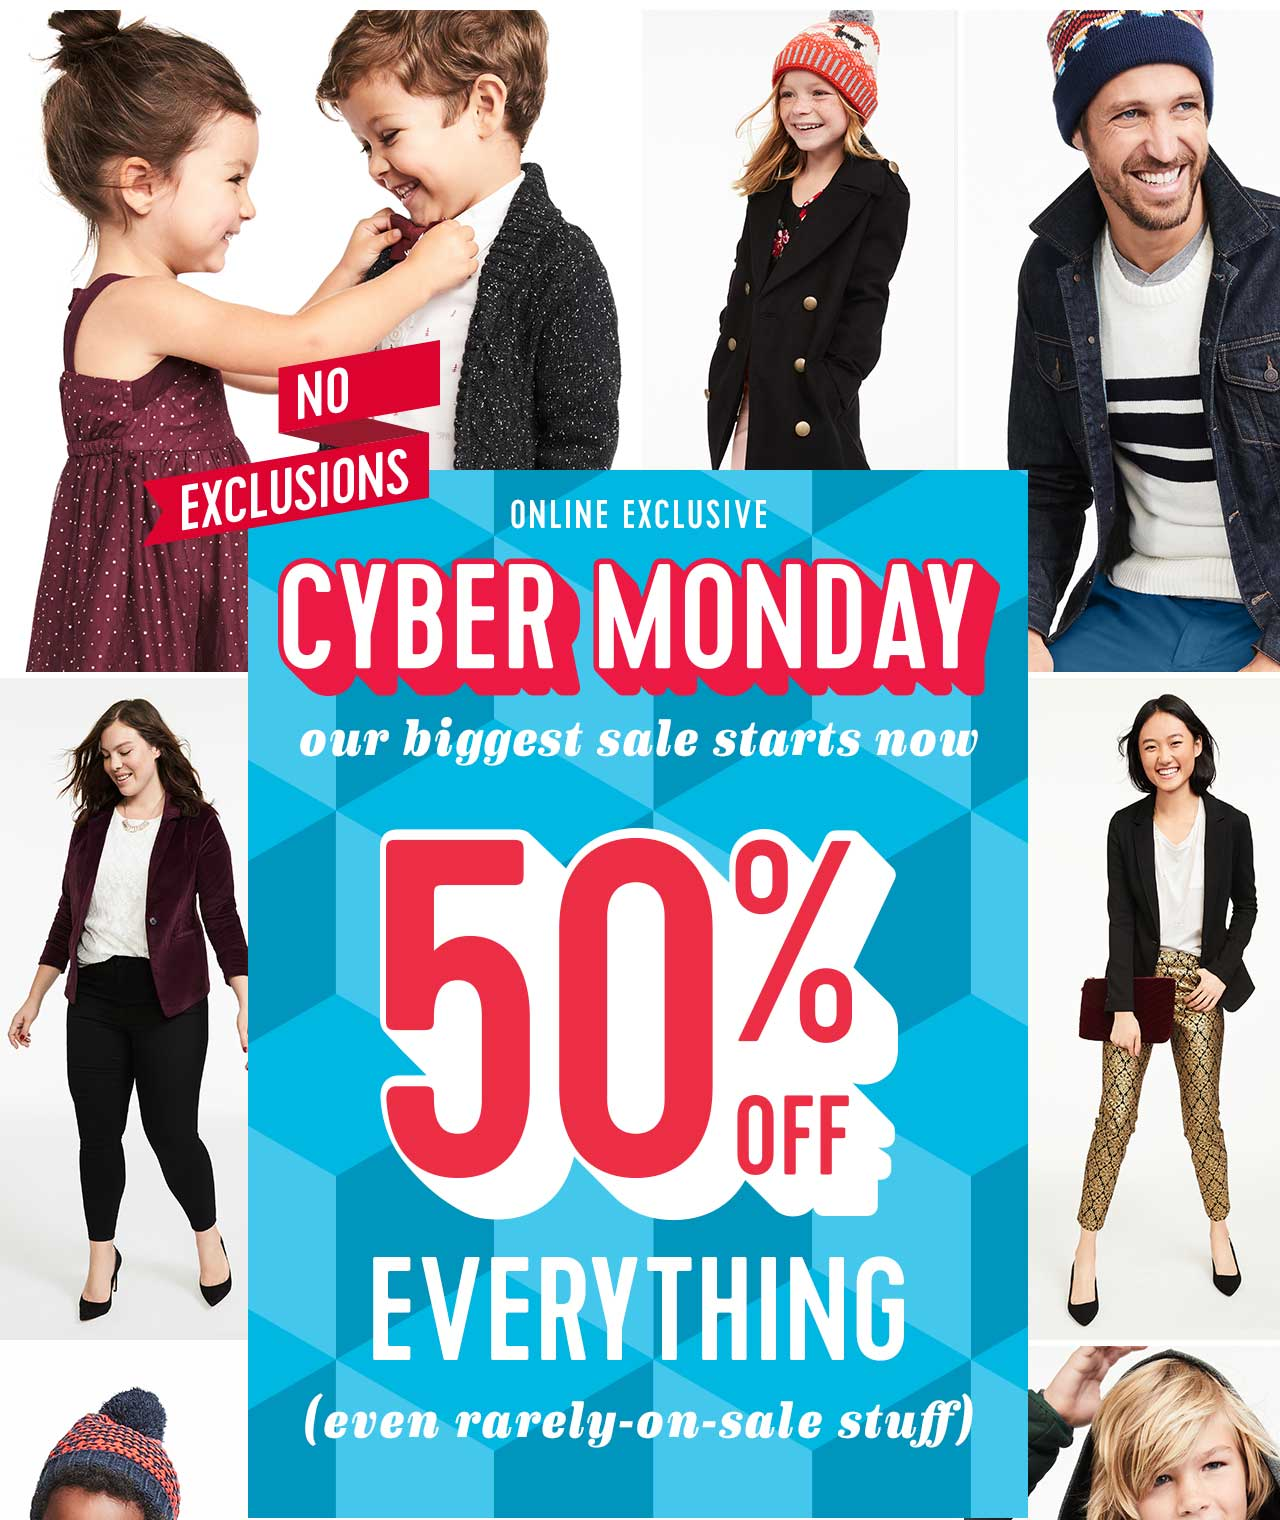 NO EXCLUSIONS | ONLINE EXCLUSIVE | CYBER MONDAY our biggest sale starts now | 50% OFF EVERYTHING